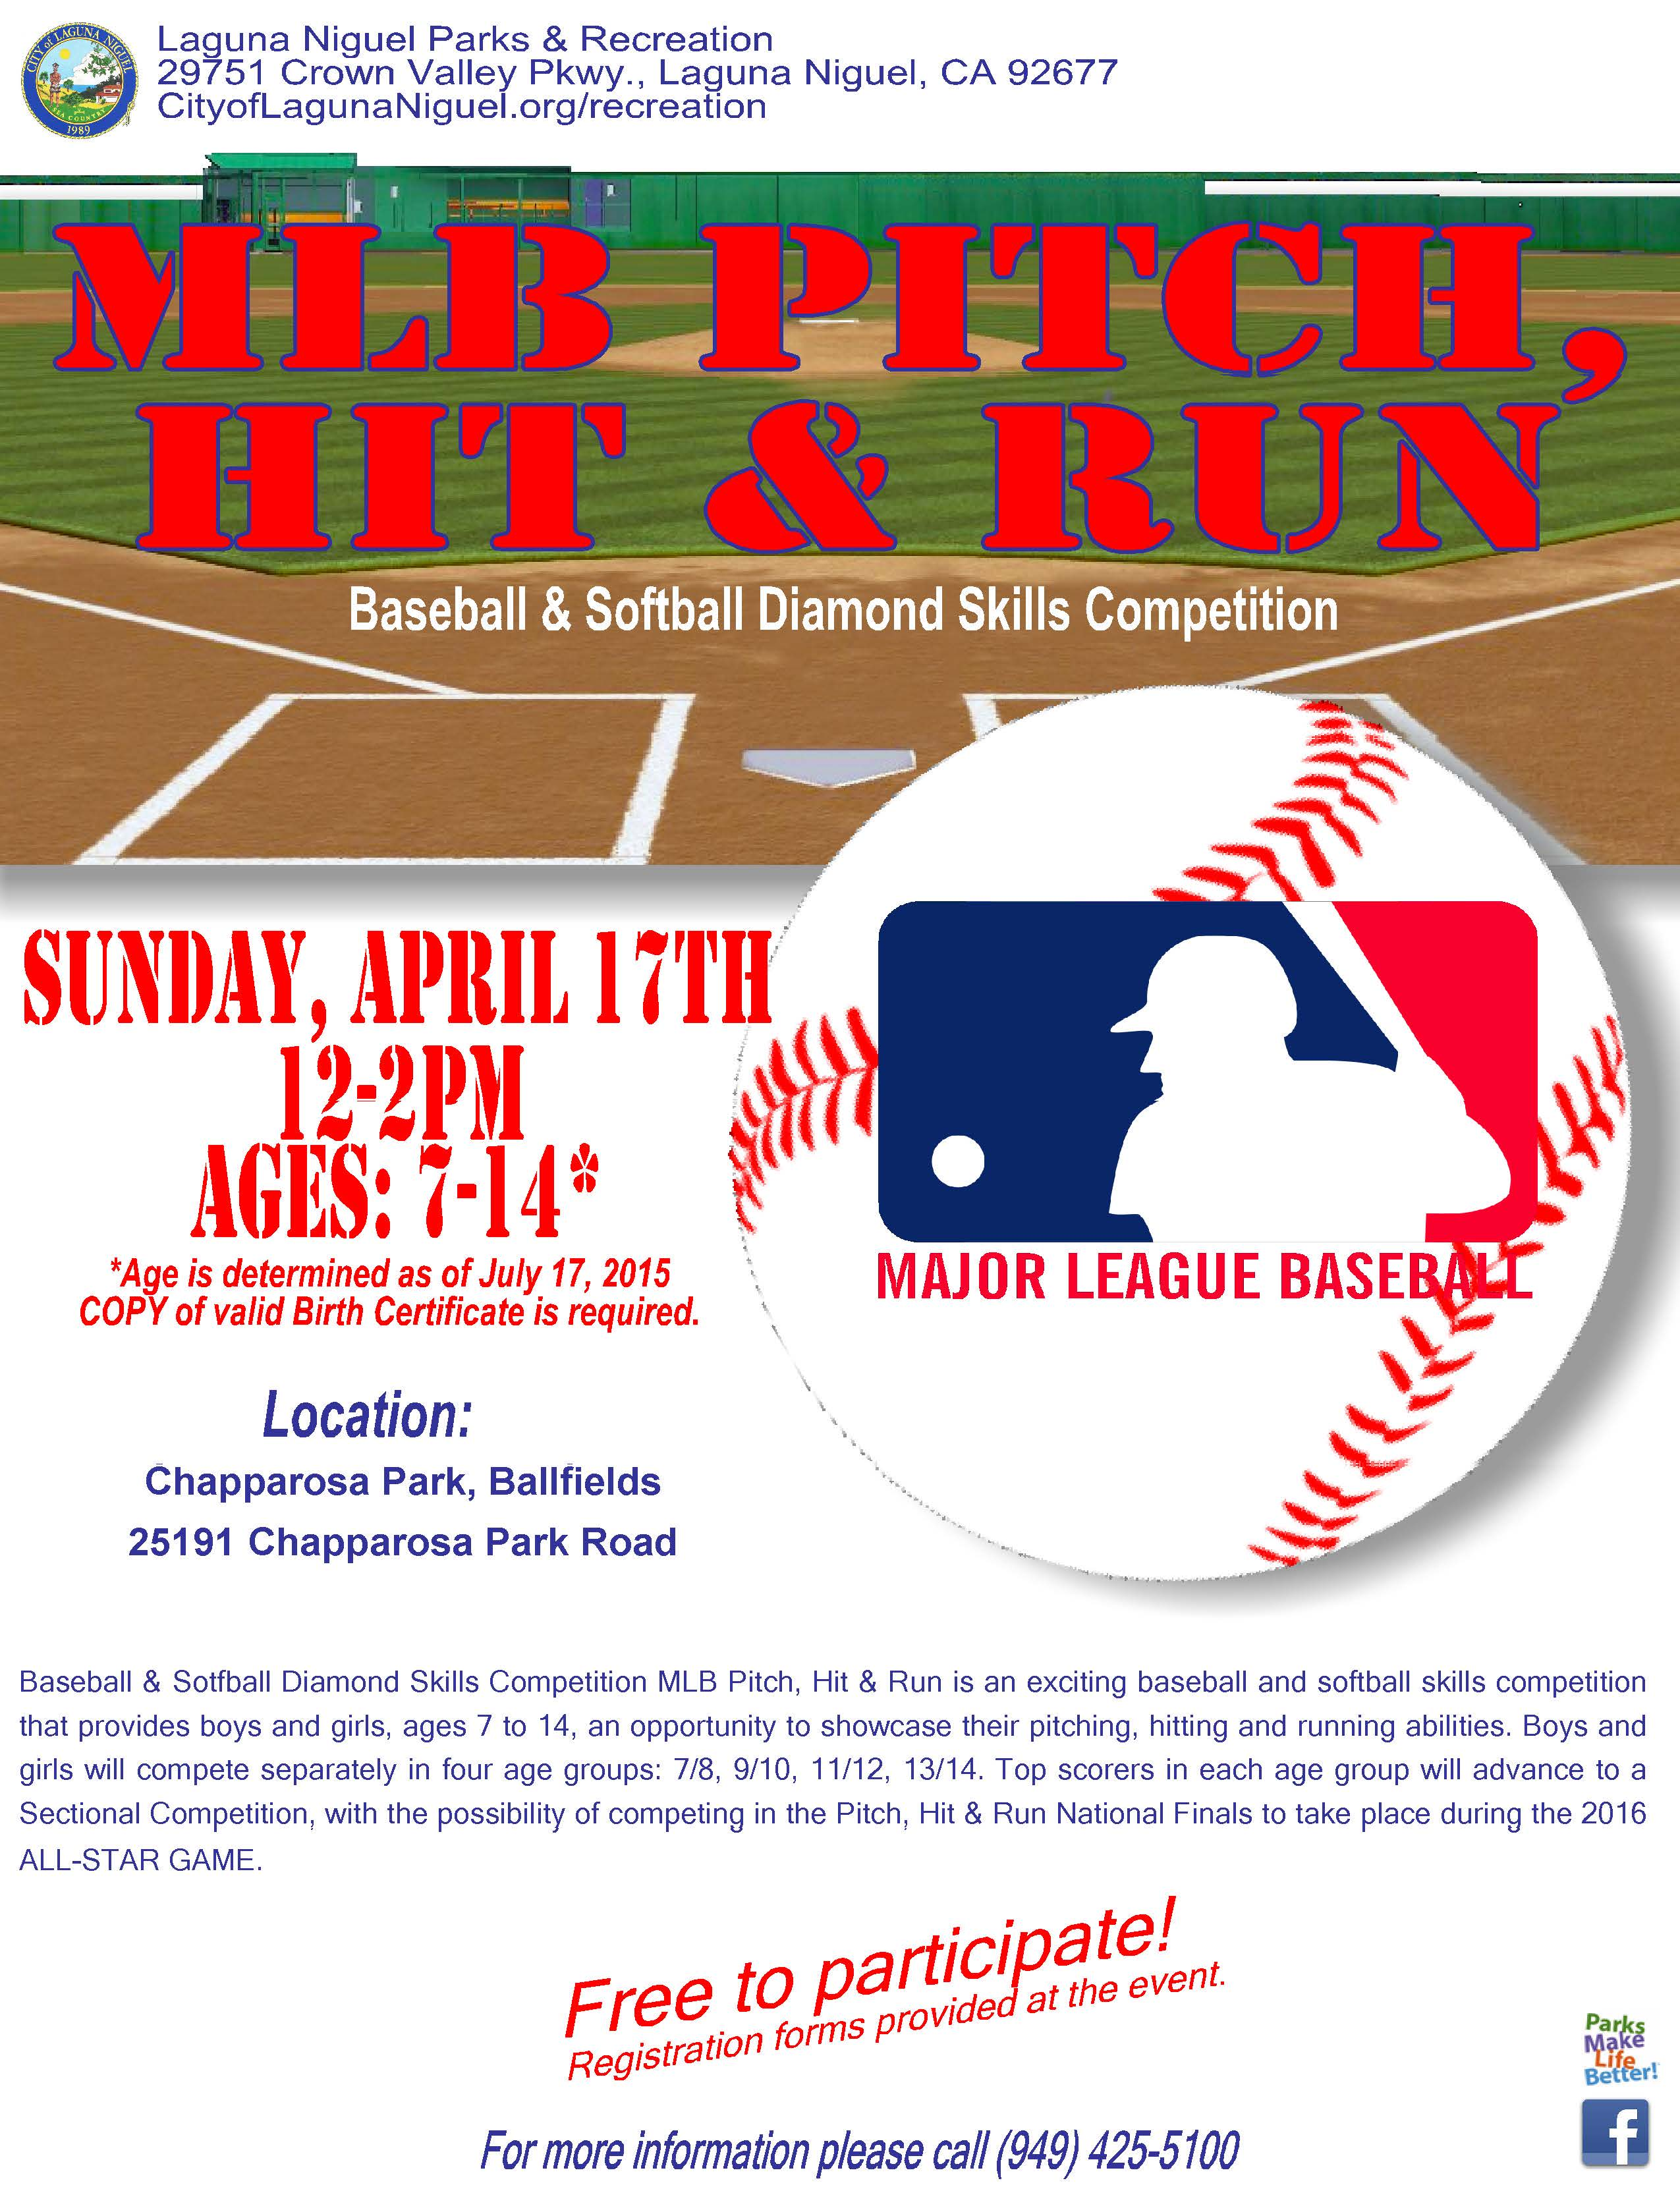 Mlb pitch hit run march 6th at chapparosa park ball fields sun download event flyer aiddatafo Gallery